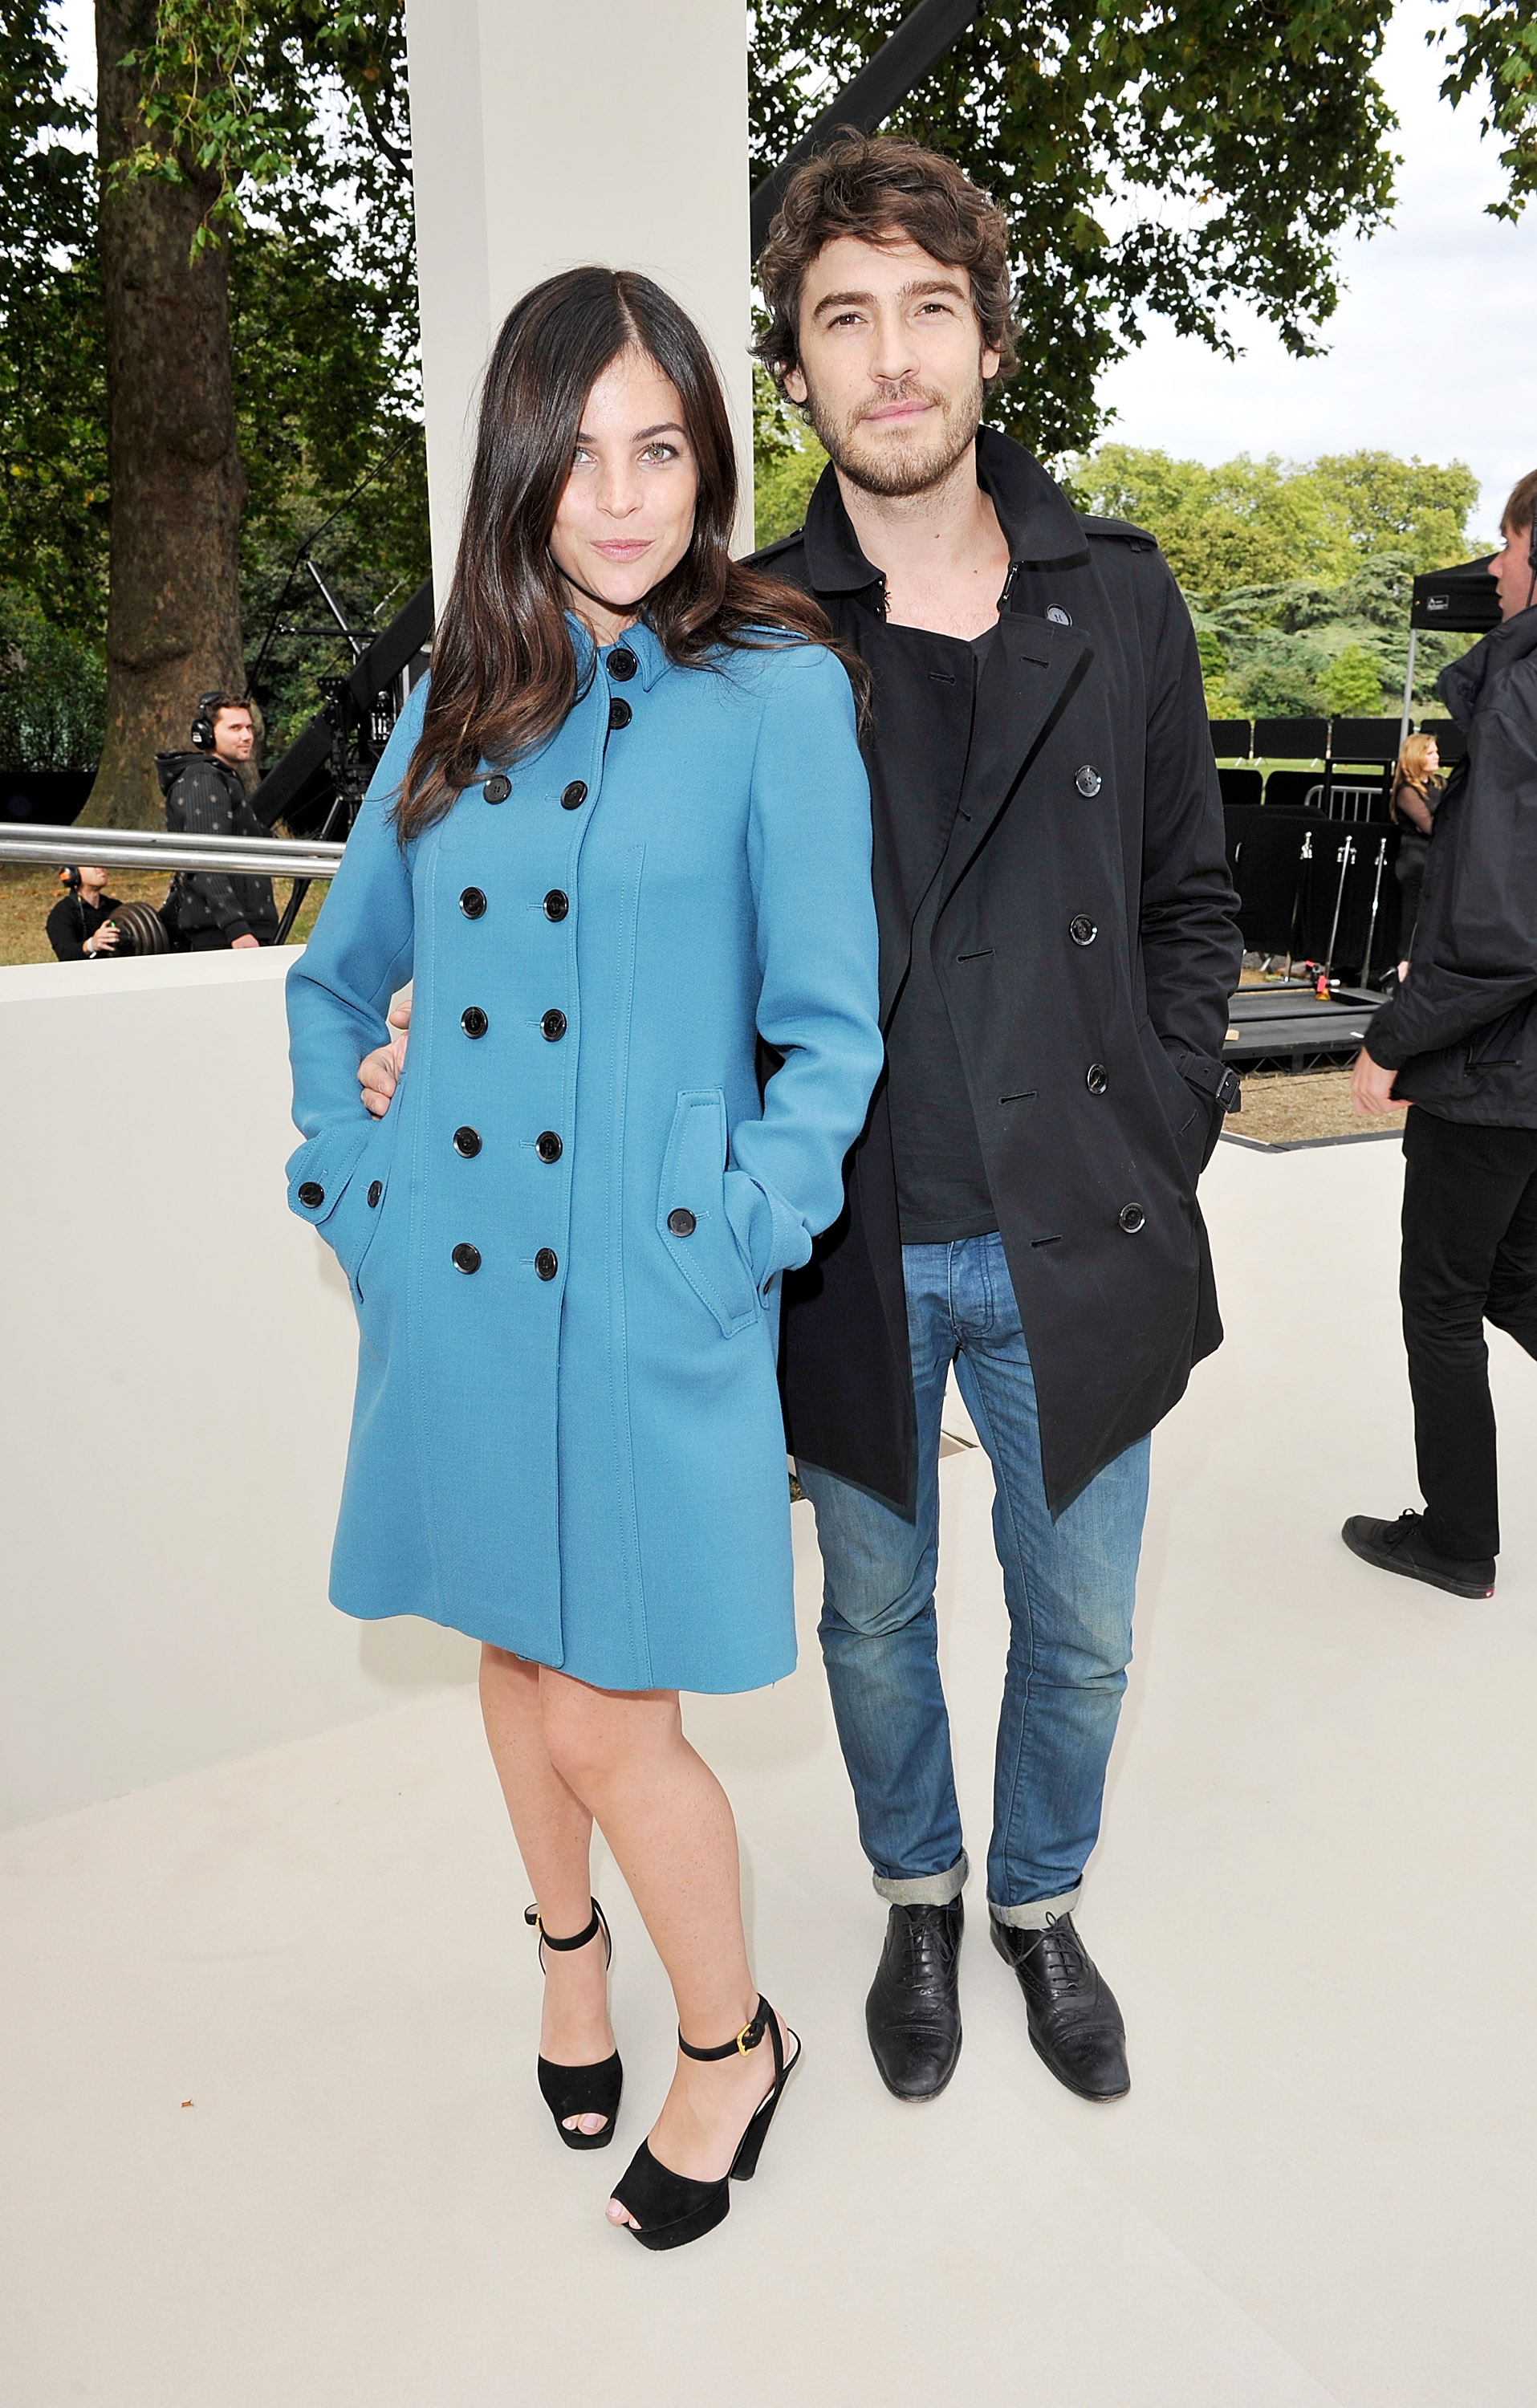 Julia Restoin Roitfeld wore a brightly hued Burberry coat to the label's Spring show in London.